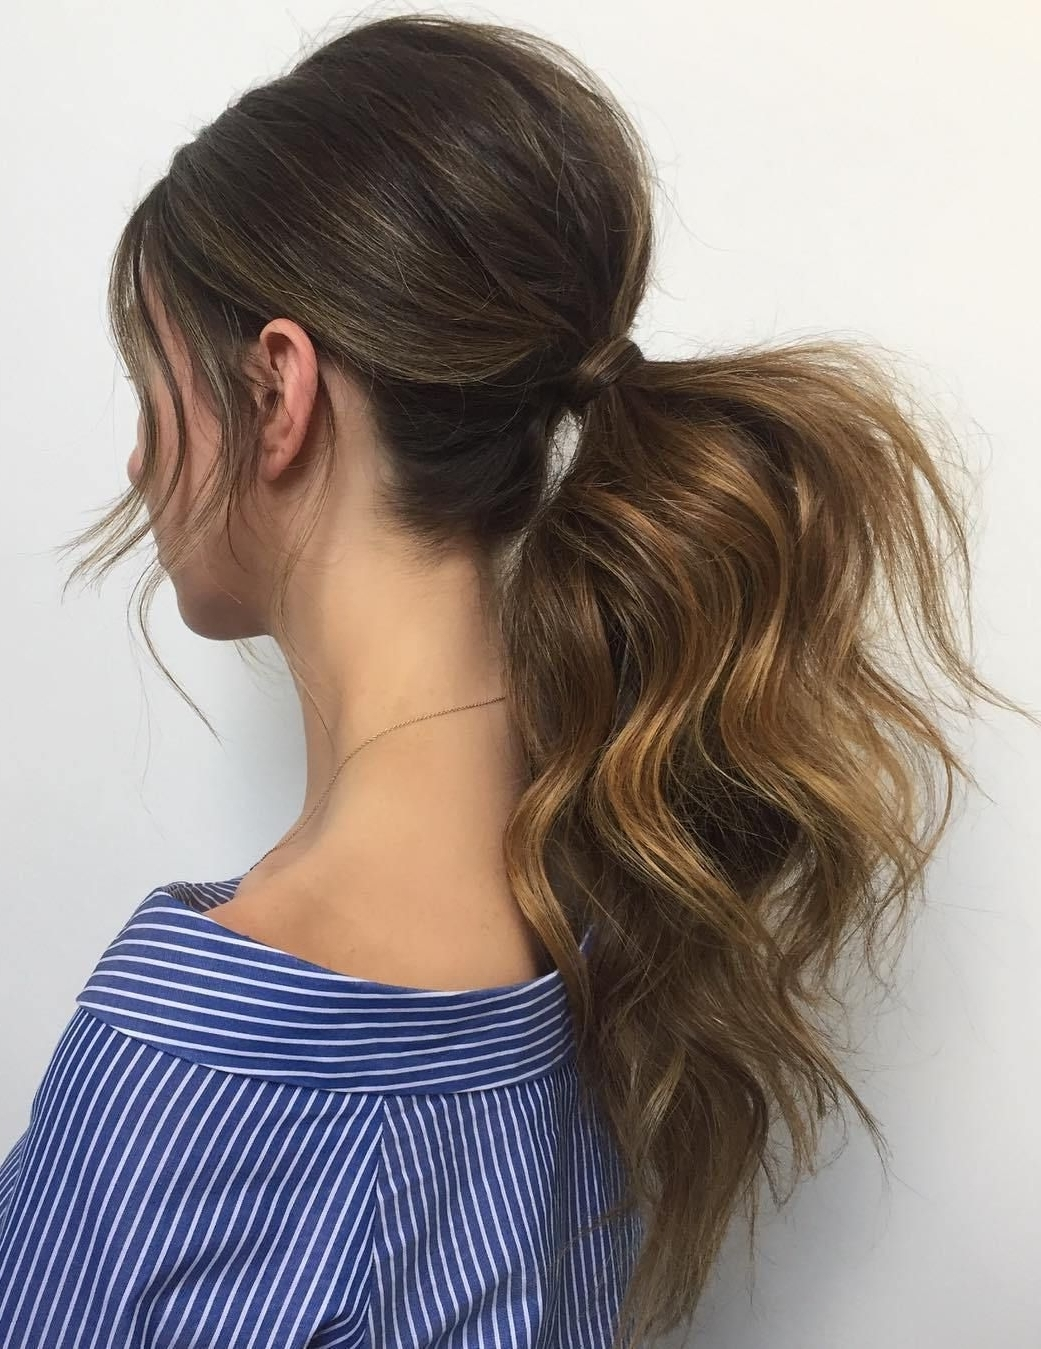 Hair Inspo (View 4 of 20)